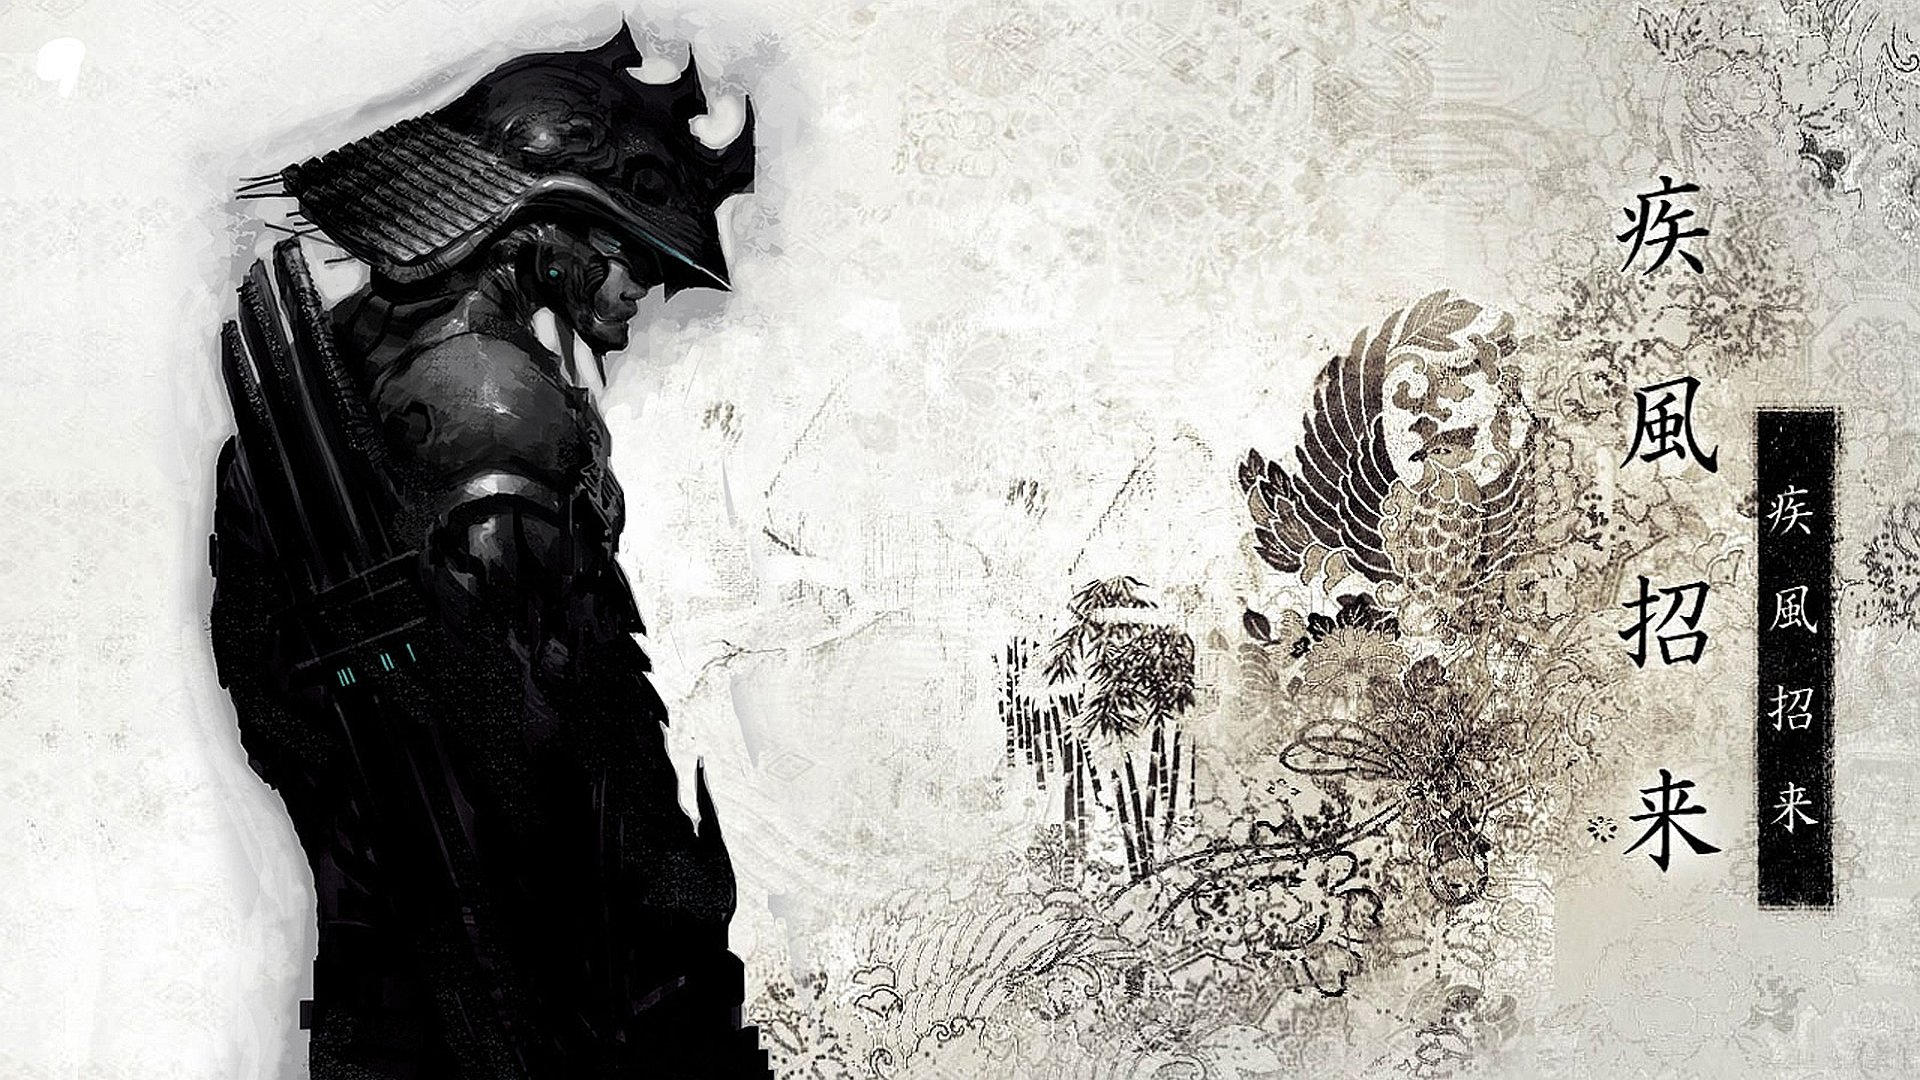 Samurai Wallpapers 1920x1080 Full Hd 1080p Desktop Backgrounds